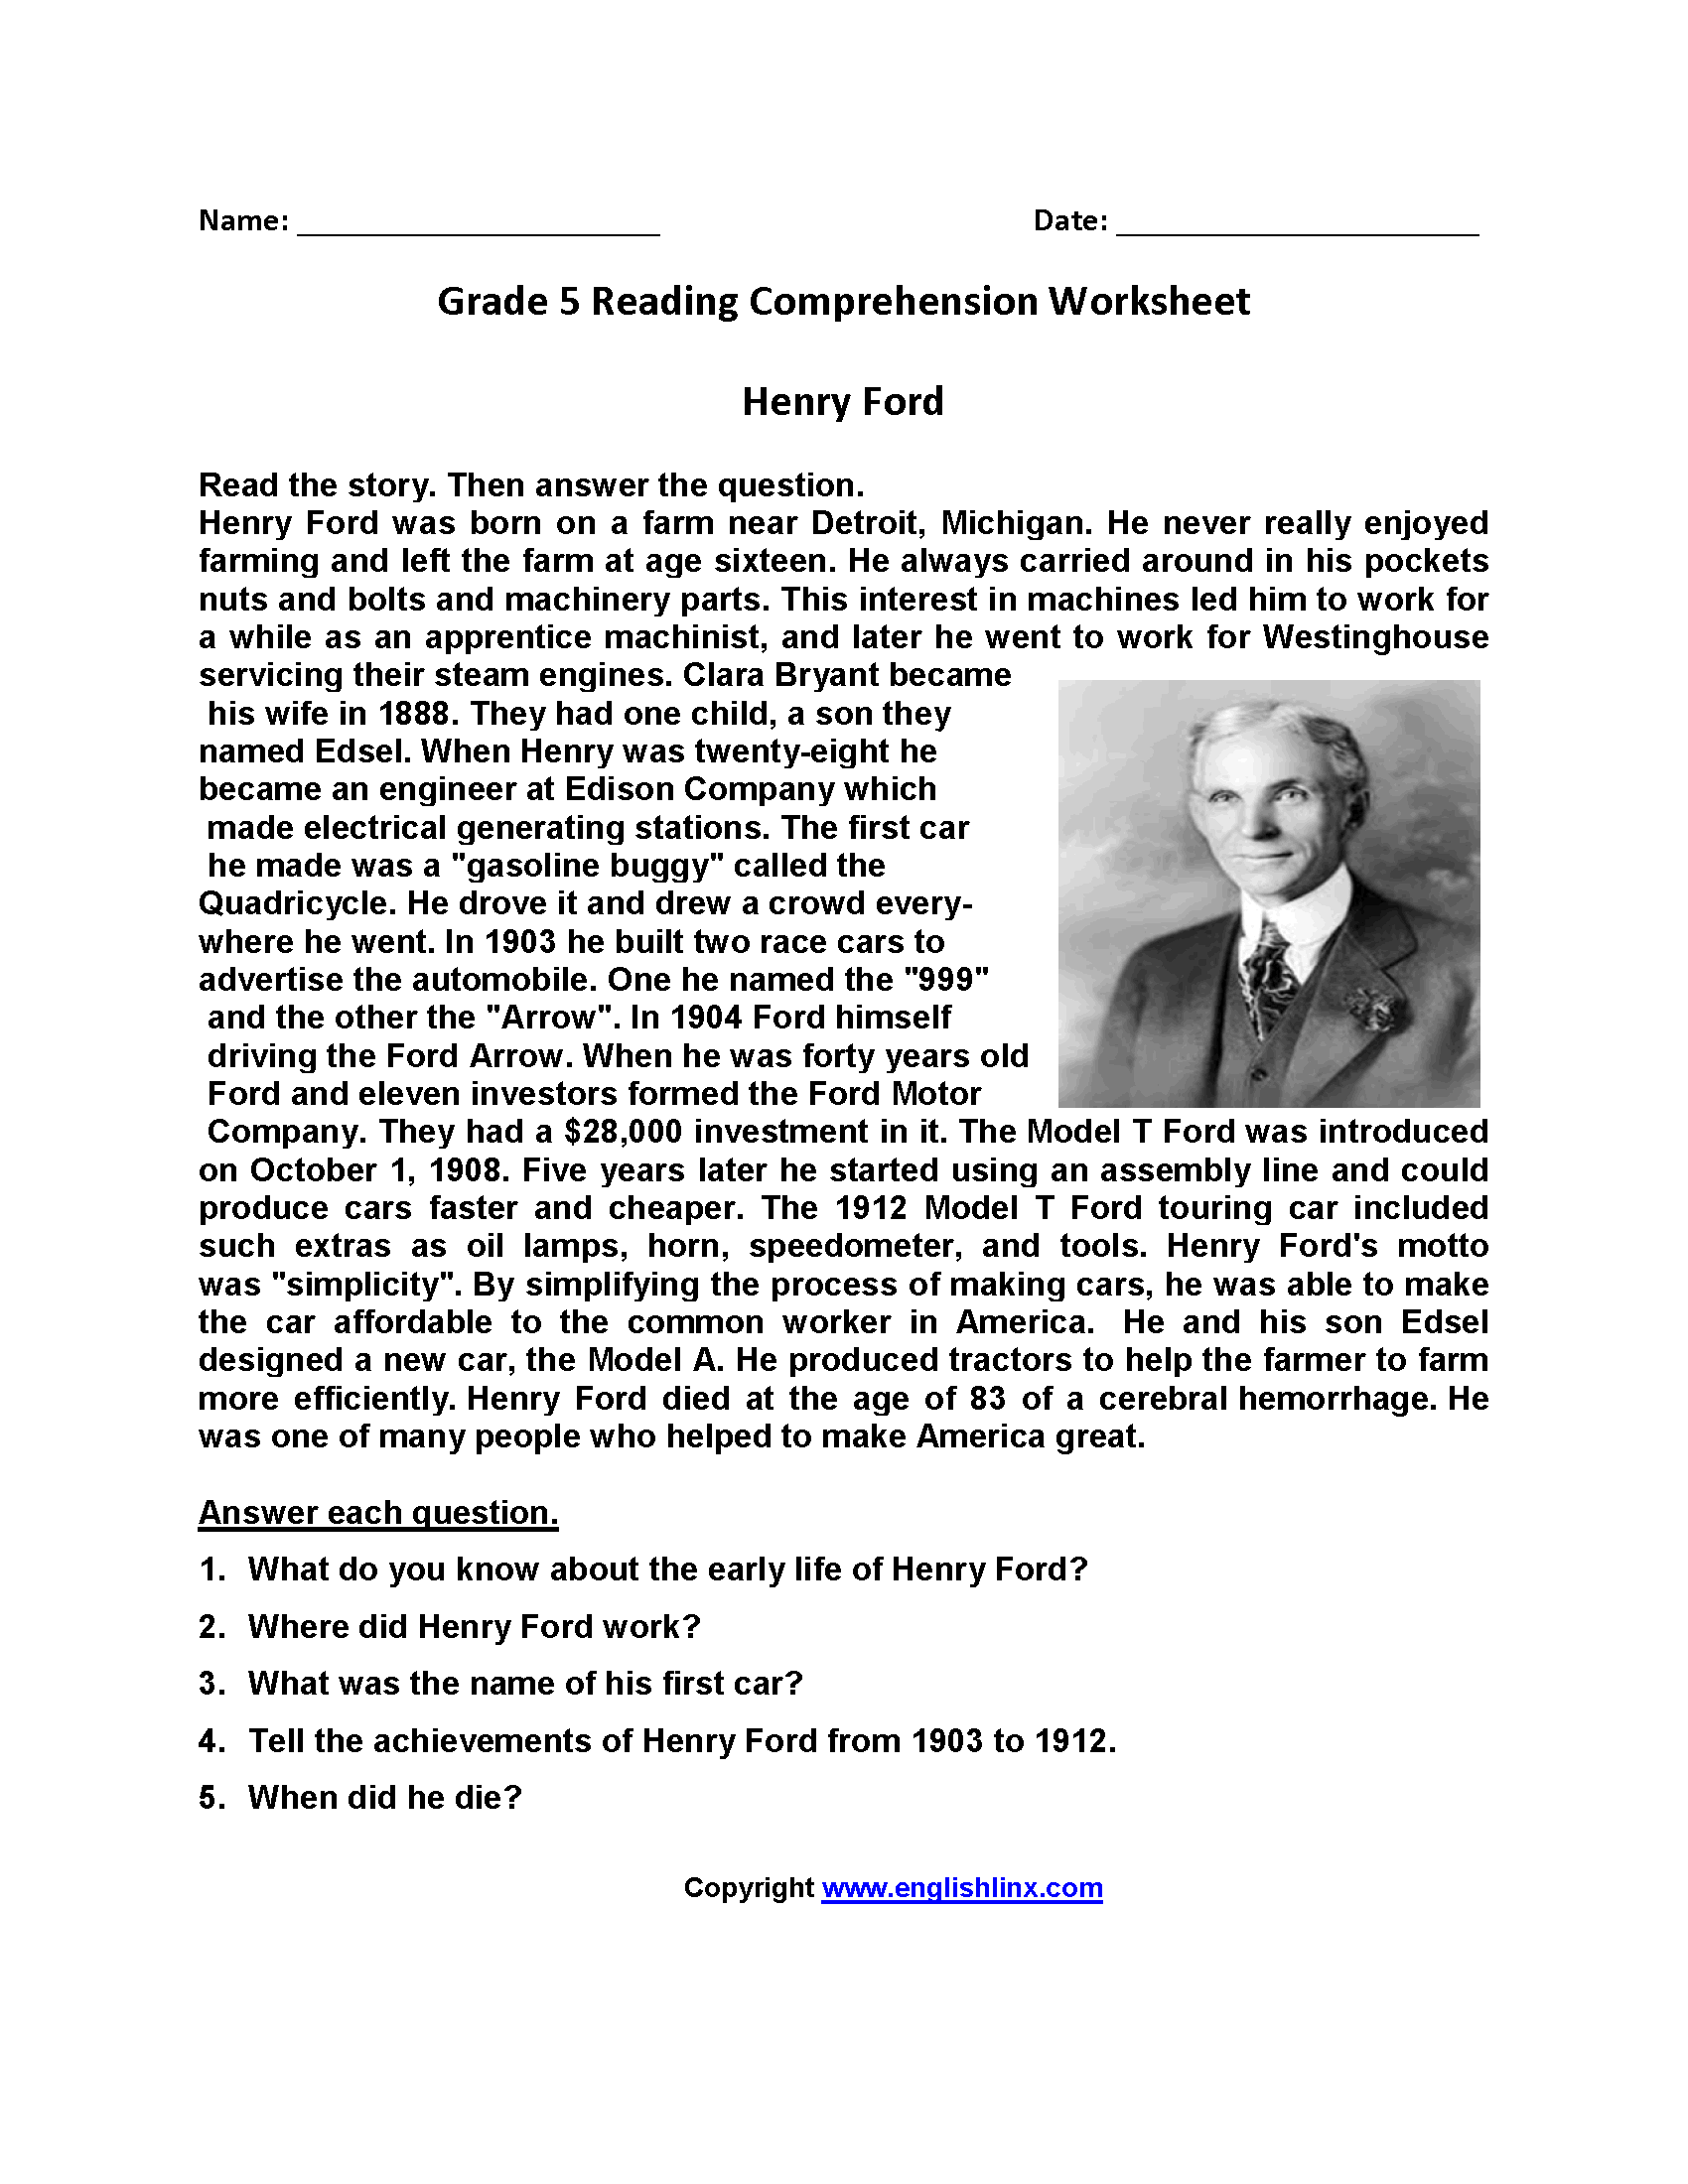 Worksheets Reading Comprehension Worksheets Pdf reading worksheets fifth grade worksheets